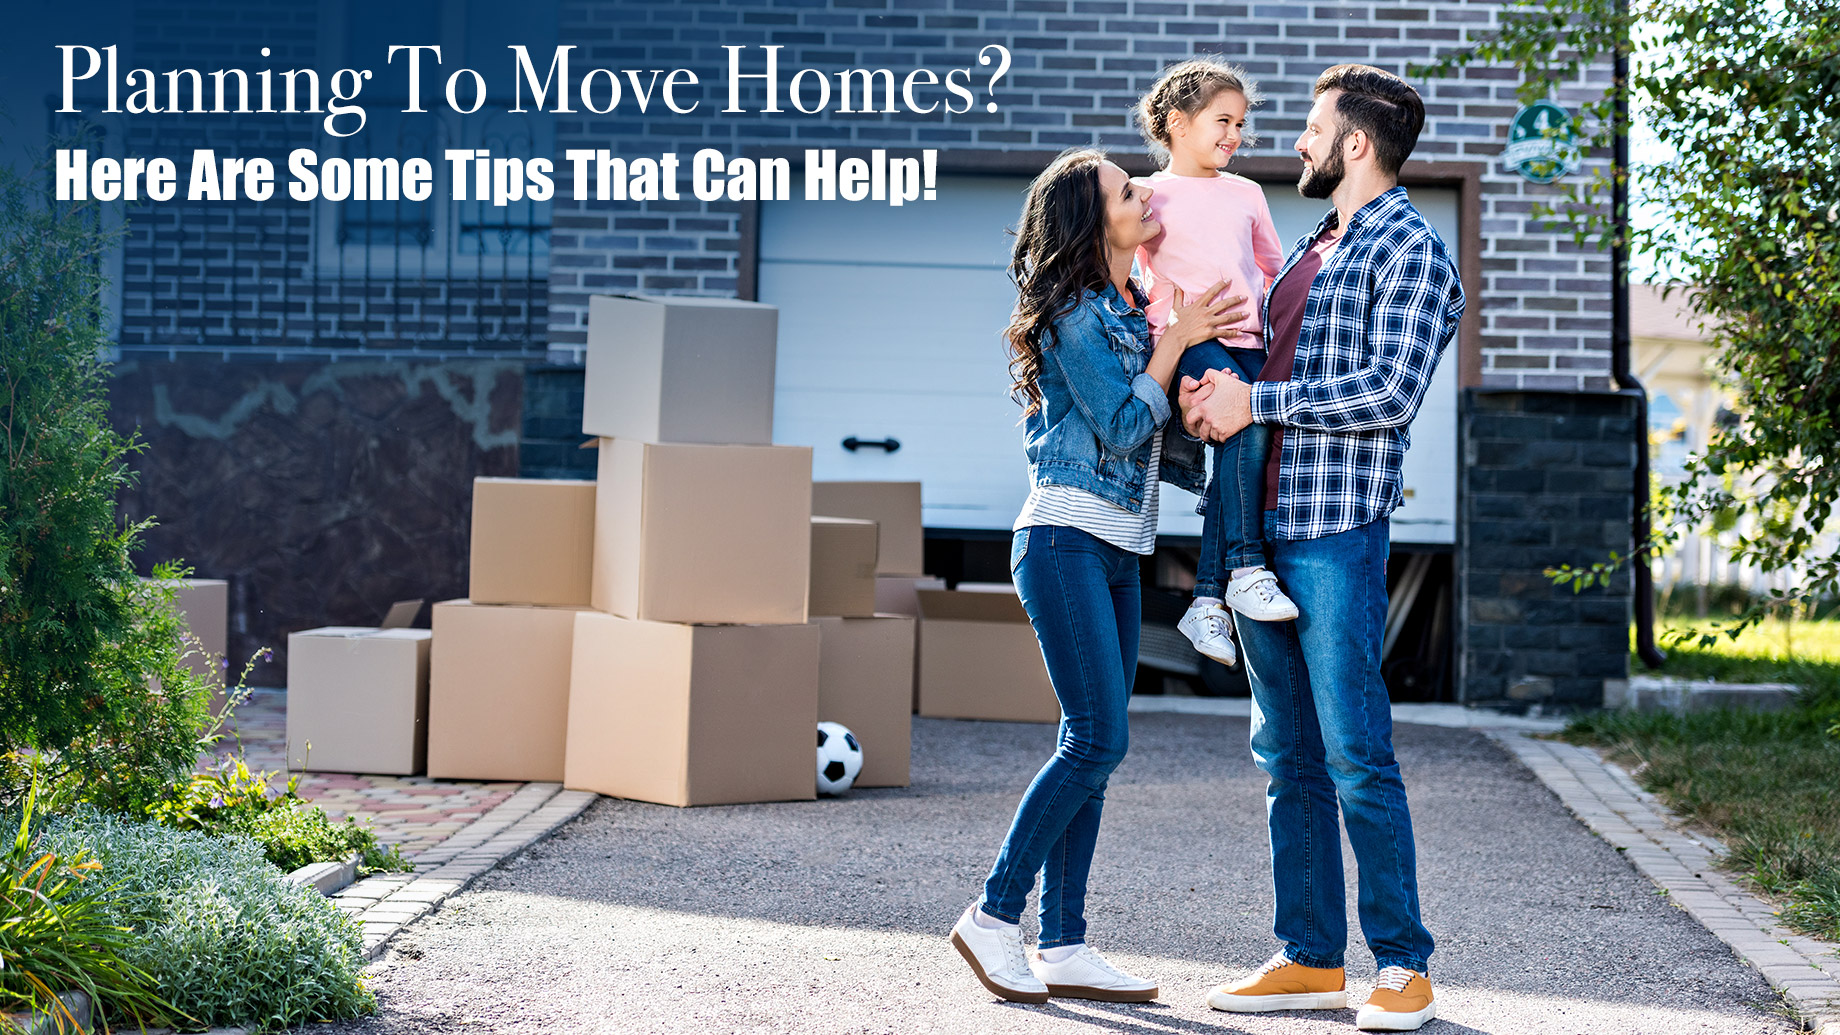 Planning To Move Homes? Here Are Some Tips That Can Help!